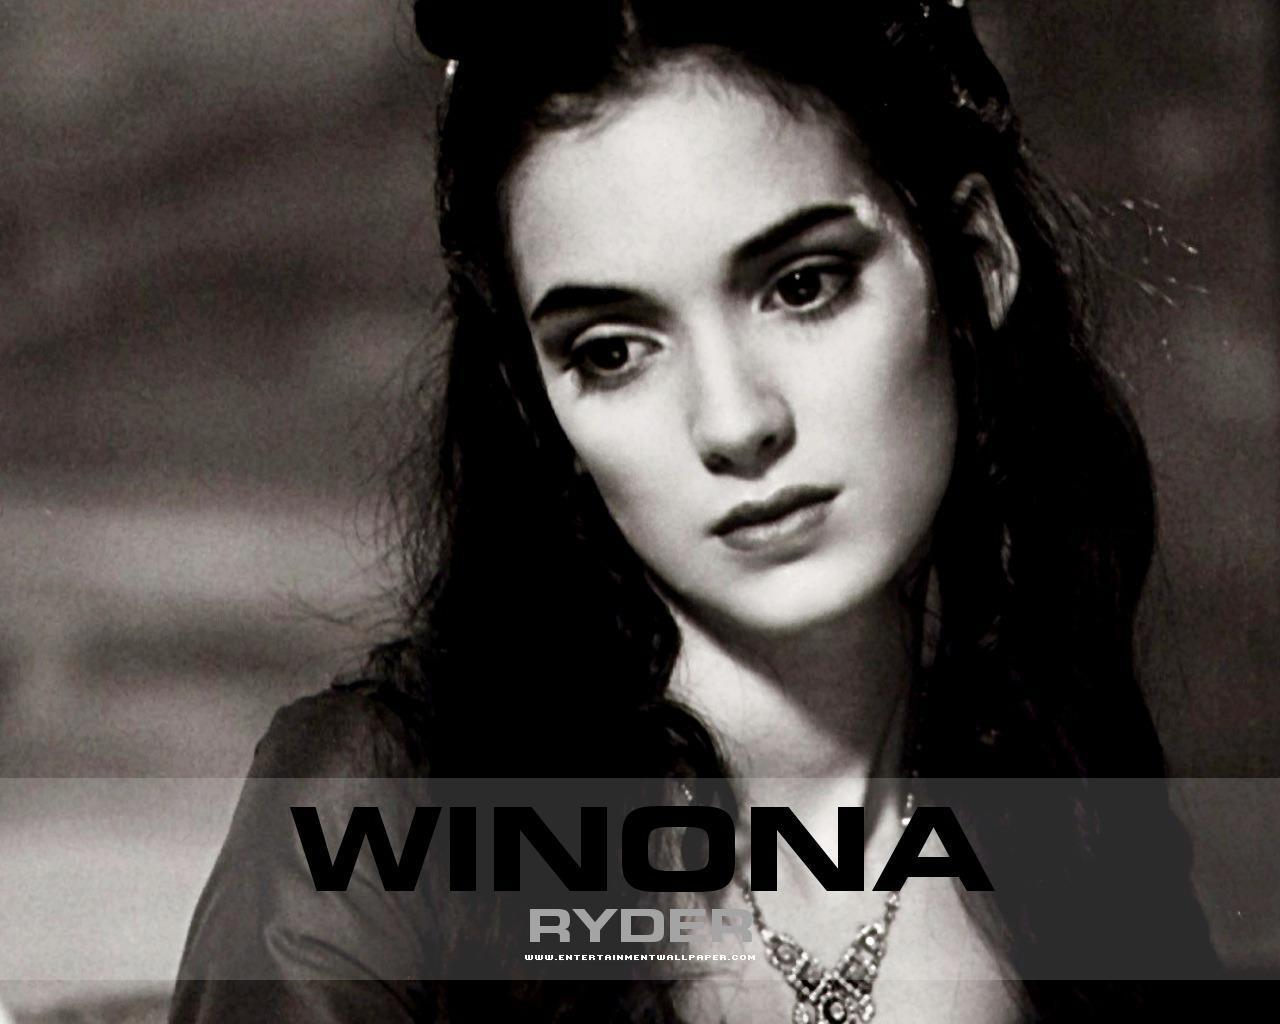 1280x1024 - Winona Ryder Wallpapers 3